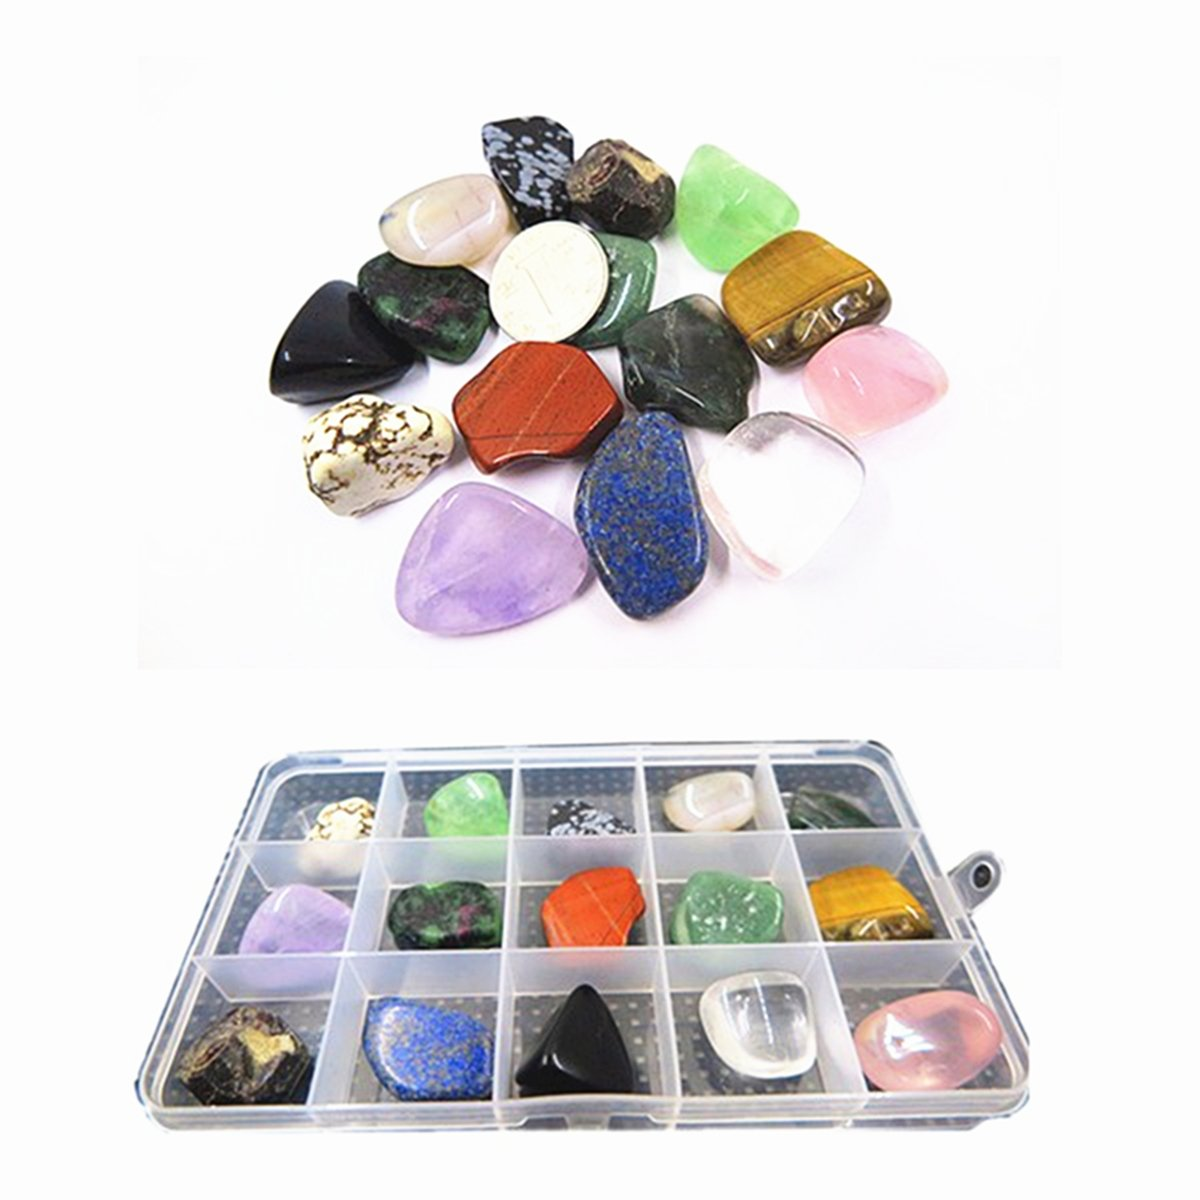 YIEASDA 15-Stone Mixed Crystals Kit, Healing Chakra Nature Rocks Stones Reiki Meditation Rituals Spiritual Metaphysical Home Decor Teaching